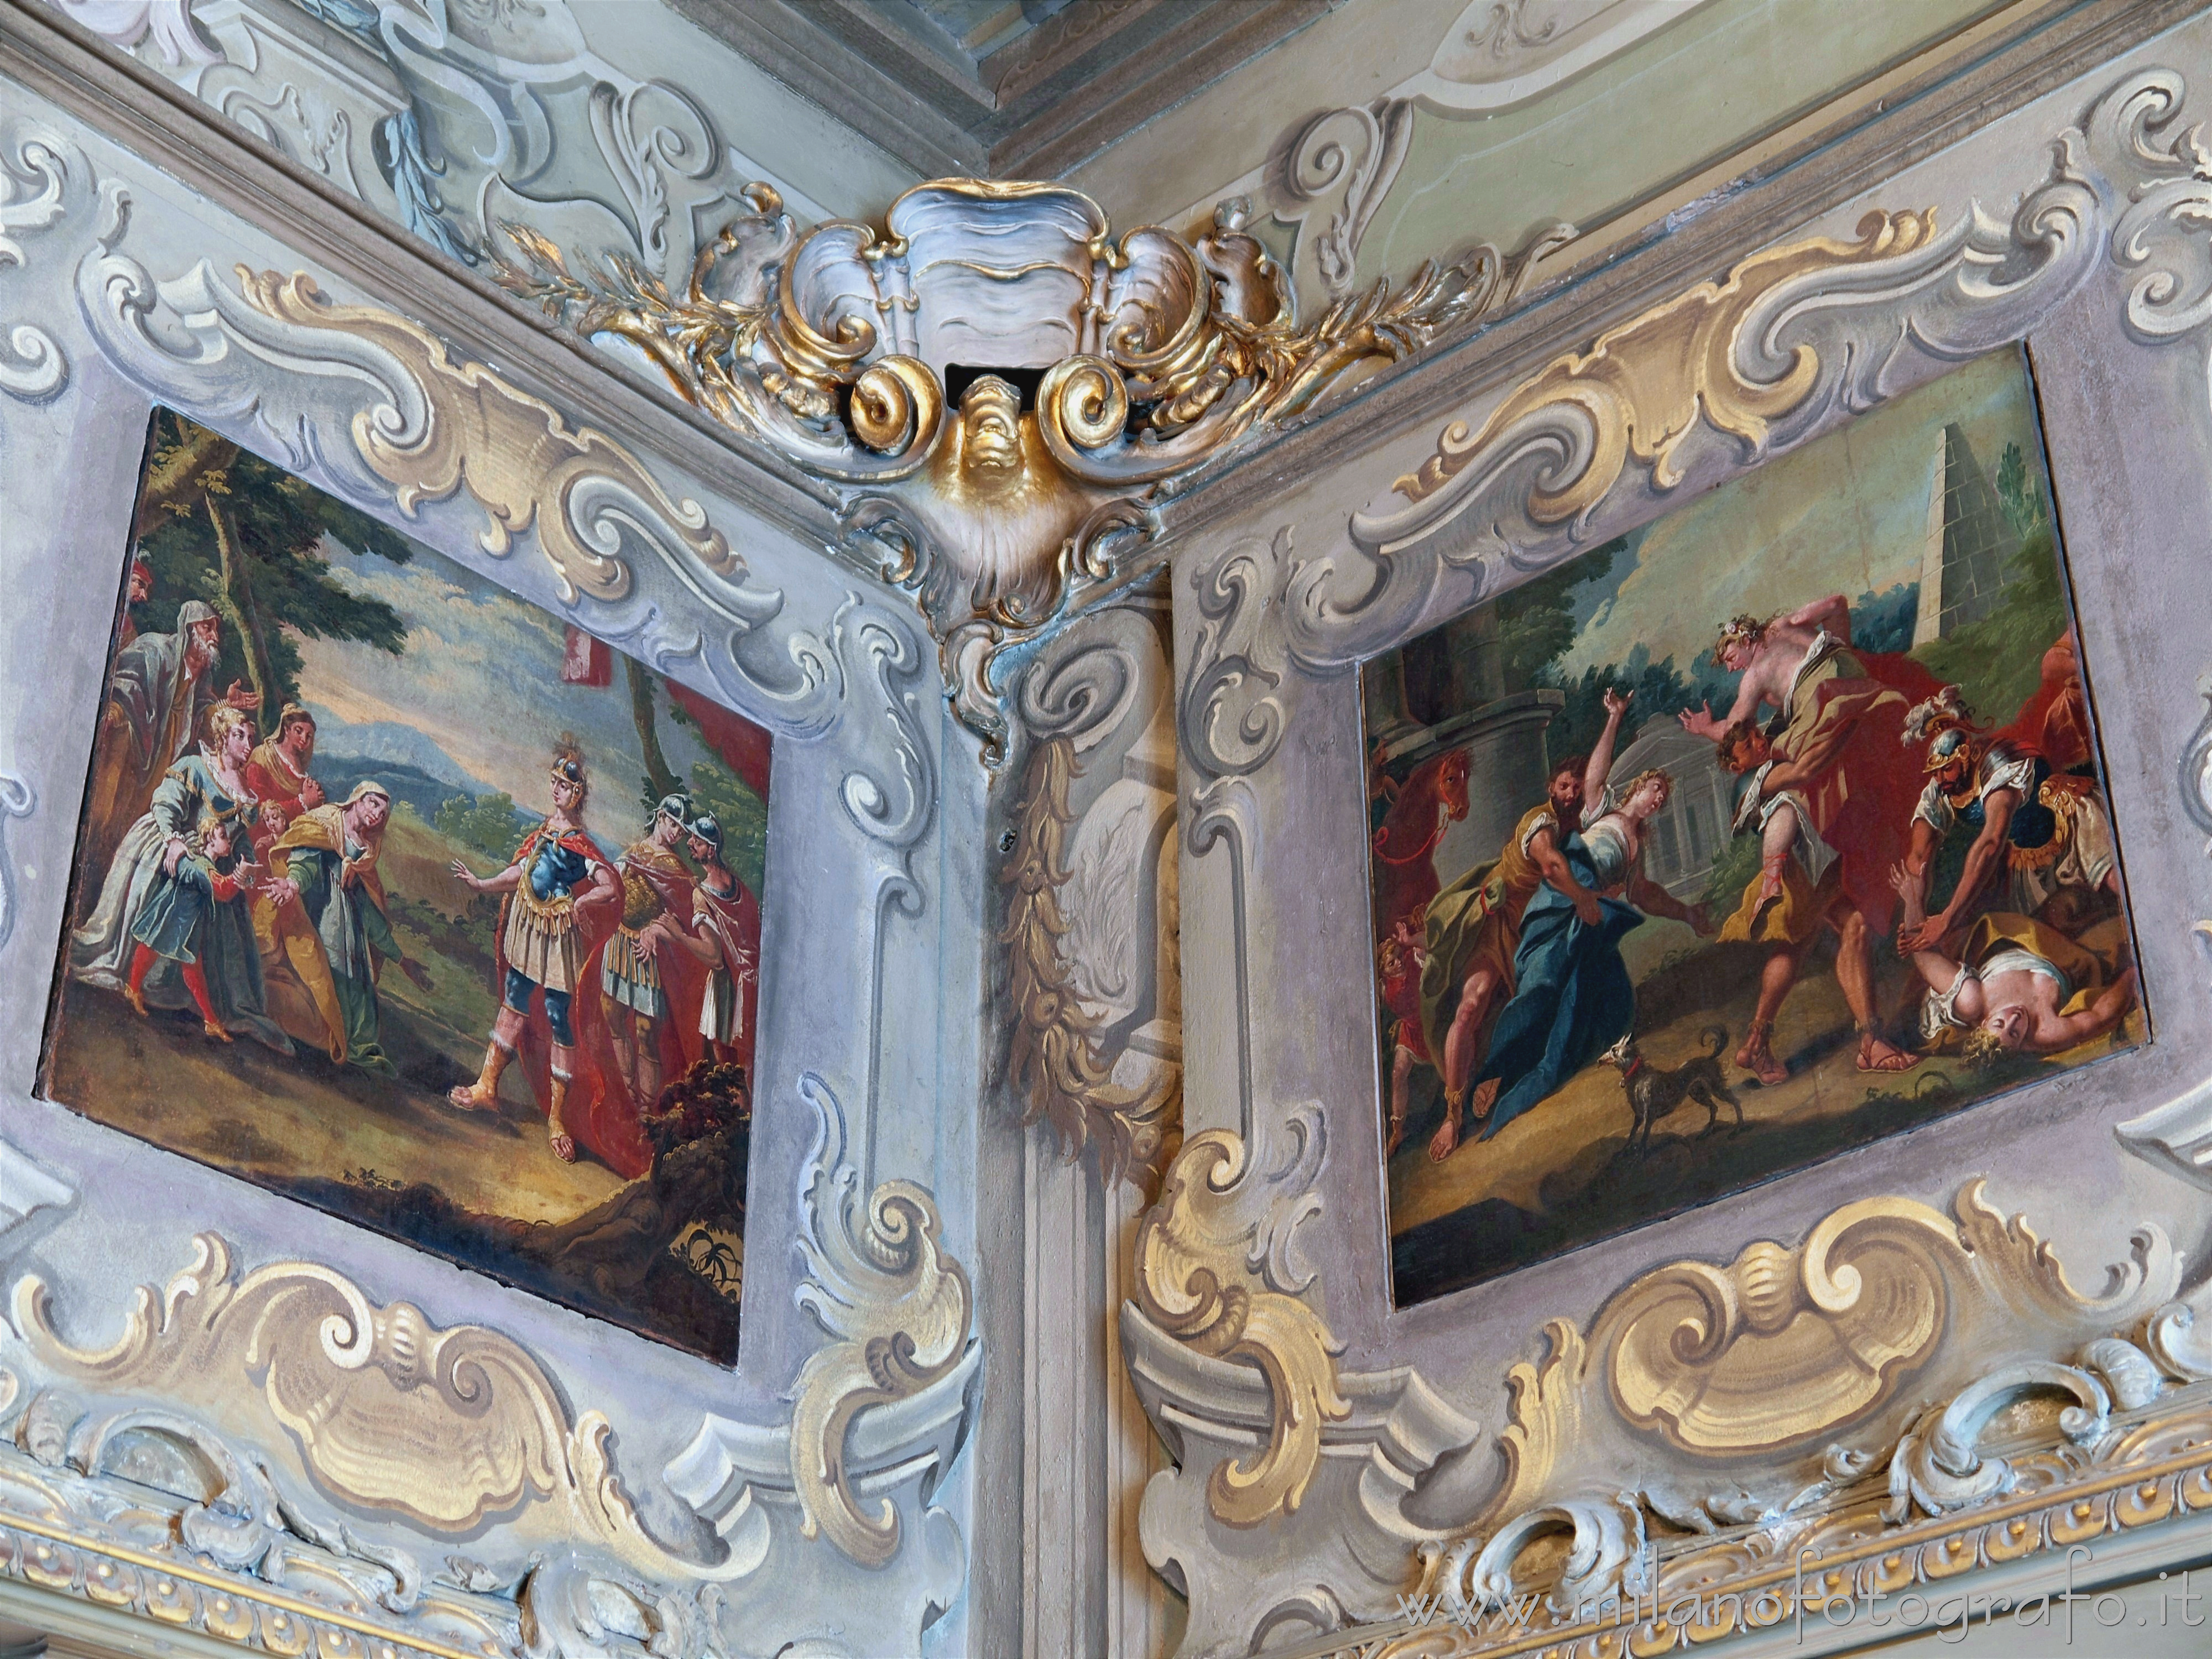 Milan (Italy): Stuccos, frescoes and paintings in the Hall Room of Palace Visconti - Milan (Italy)